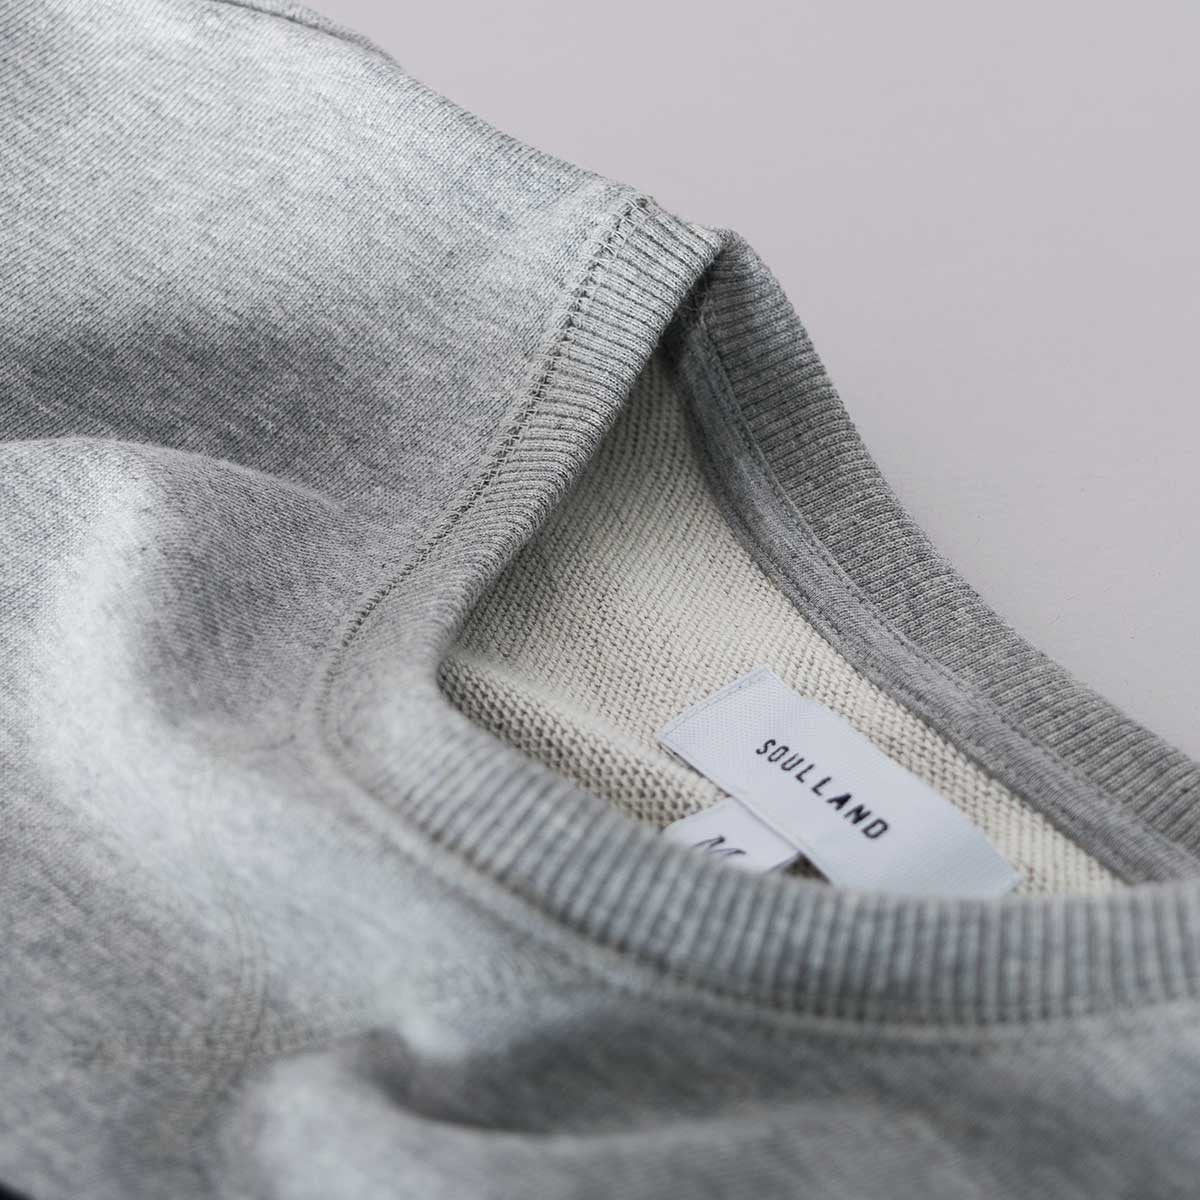 Soulland High Sweatshirt – Grey  - CARTOCON